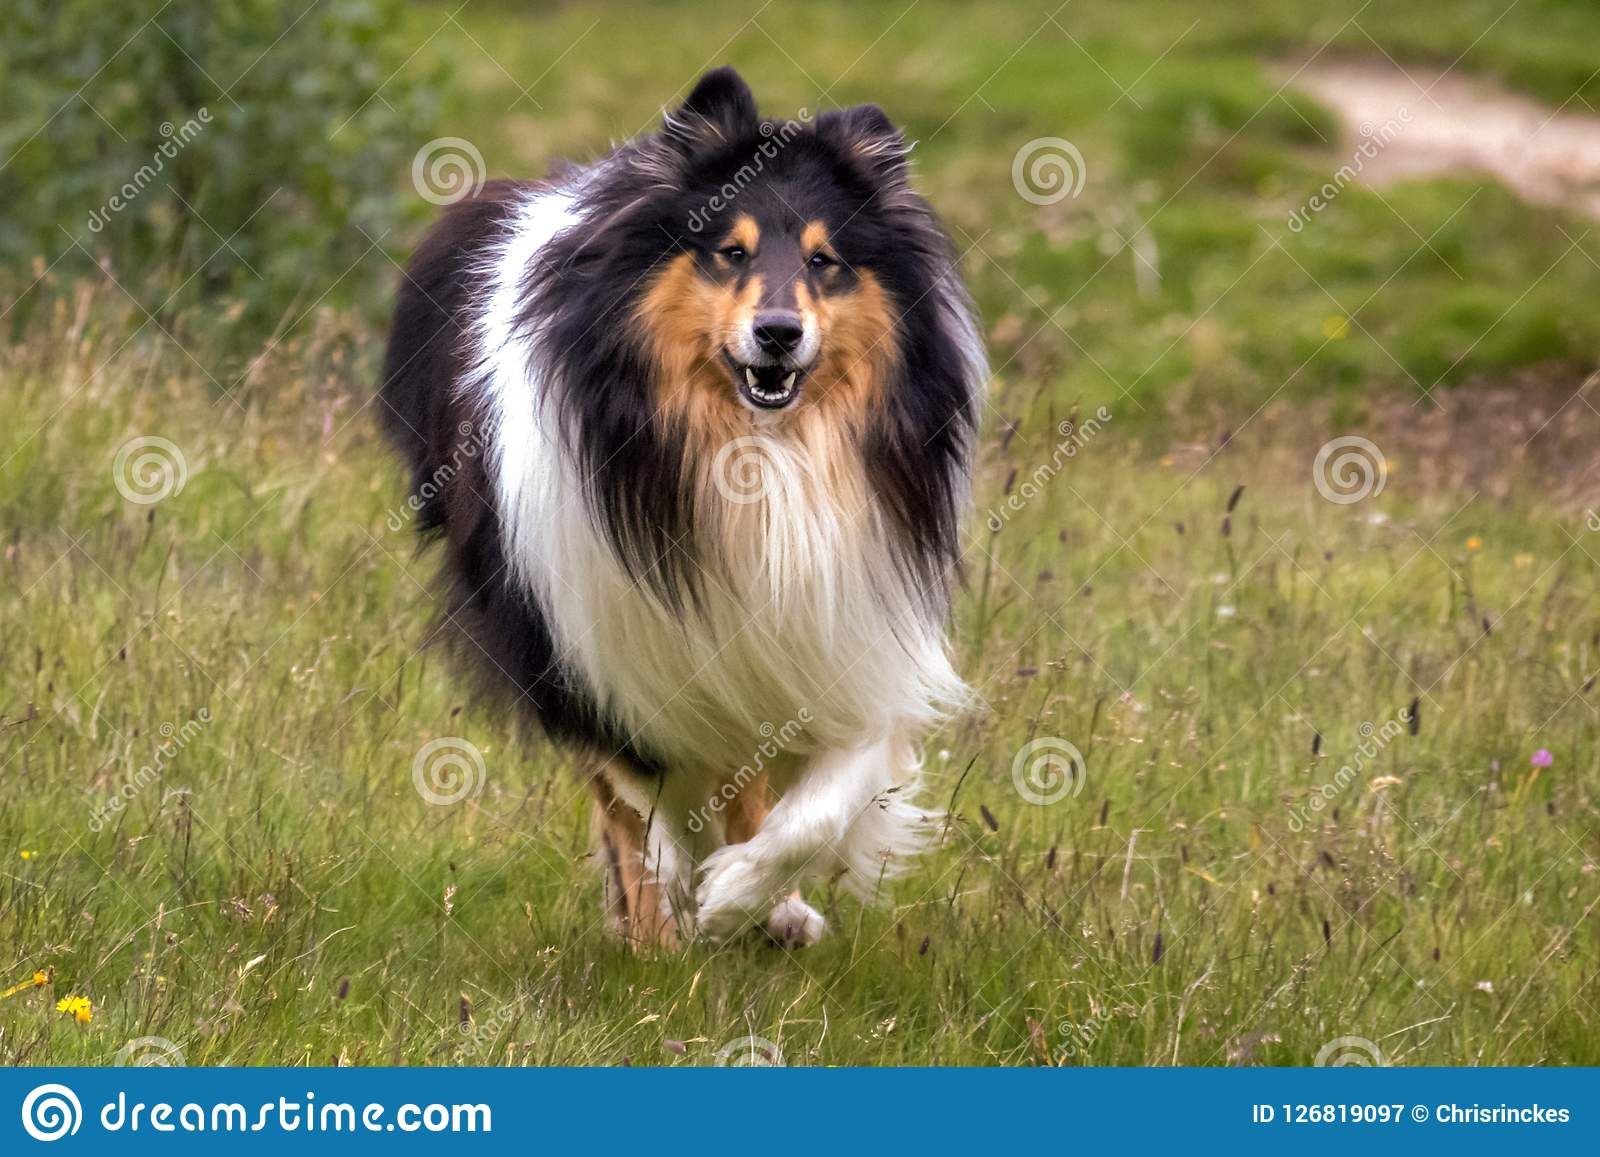 Gorgeous Scottisch or Scotch, Rough Collie at play